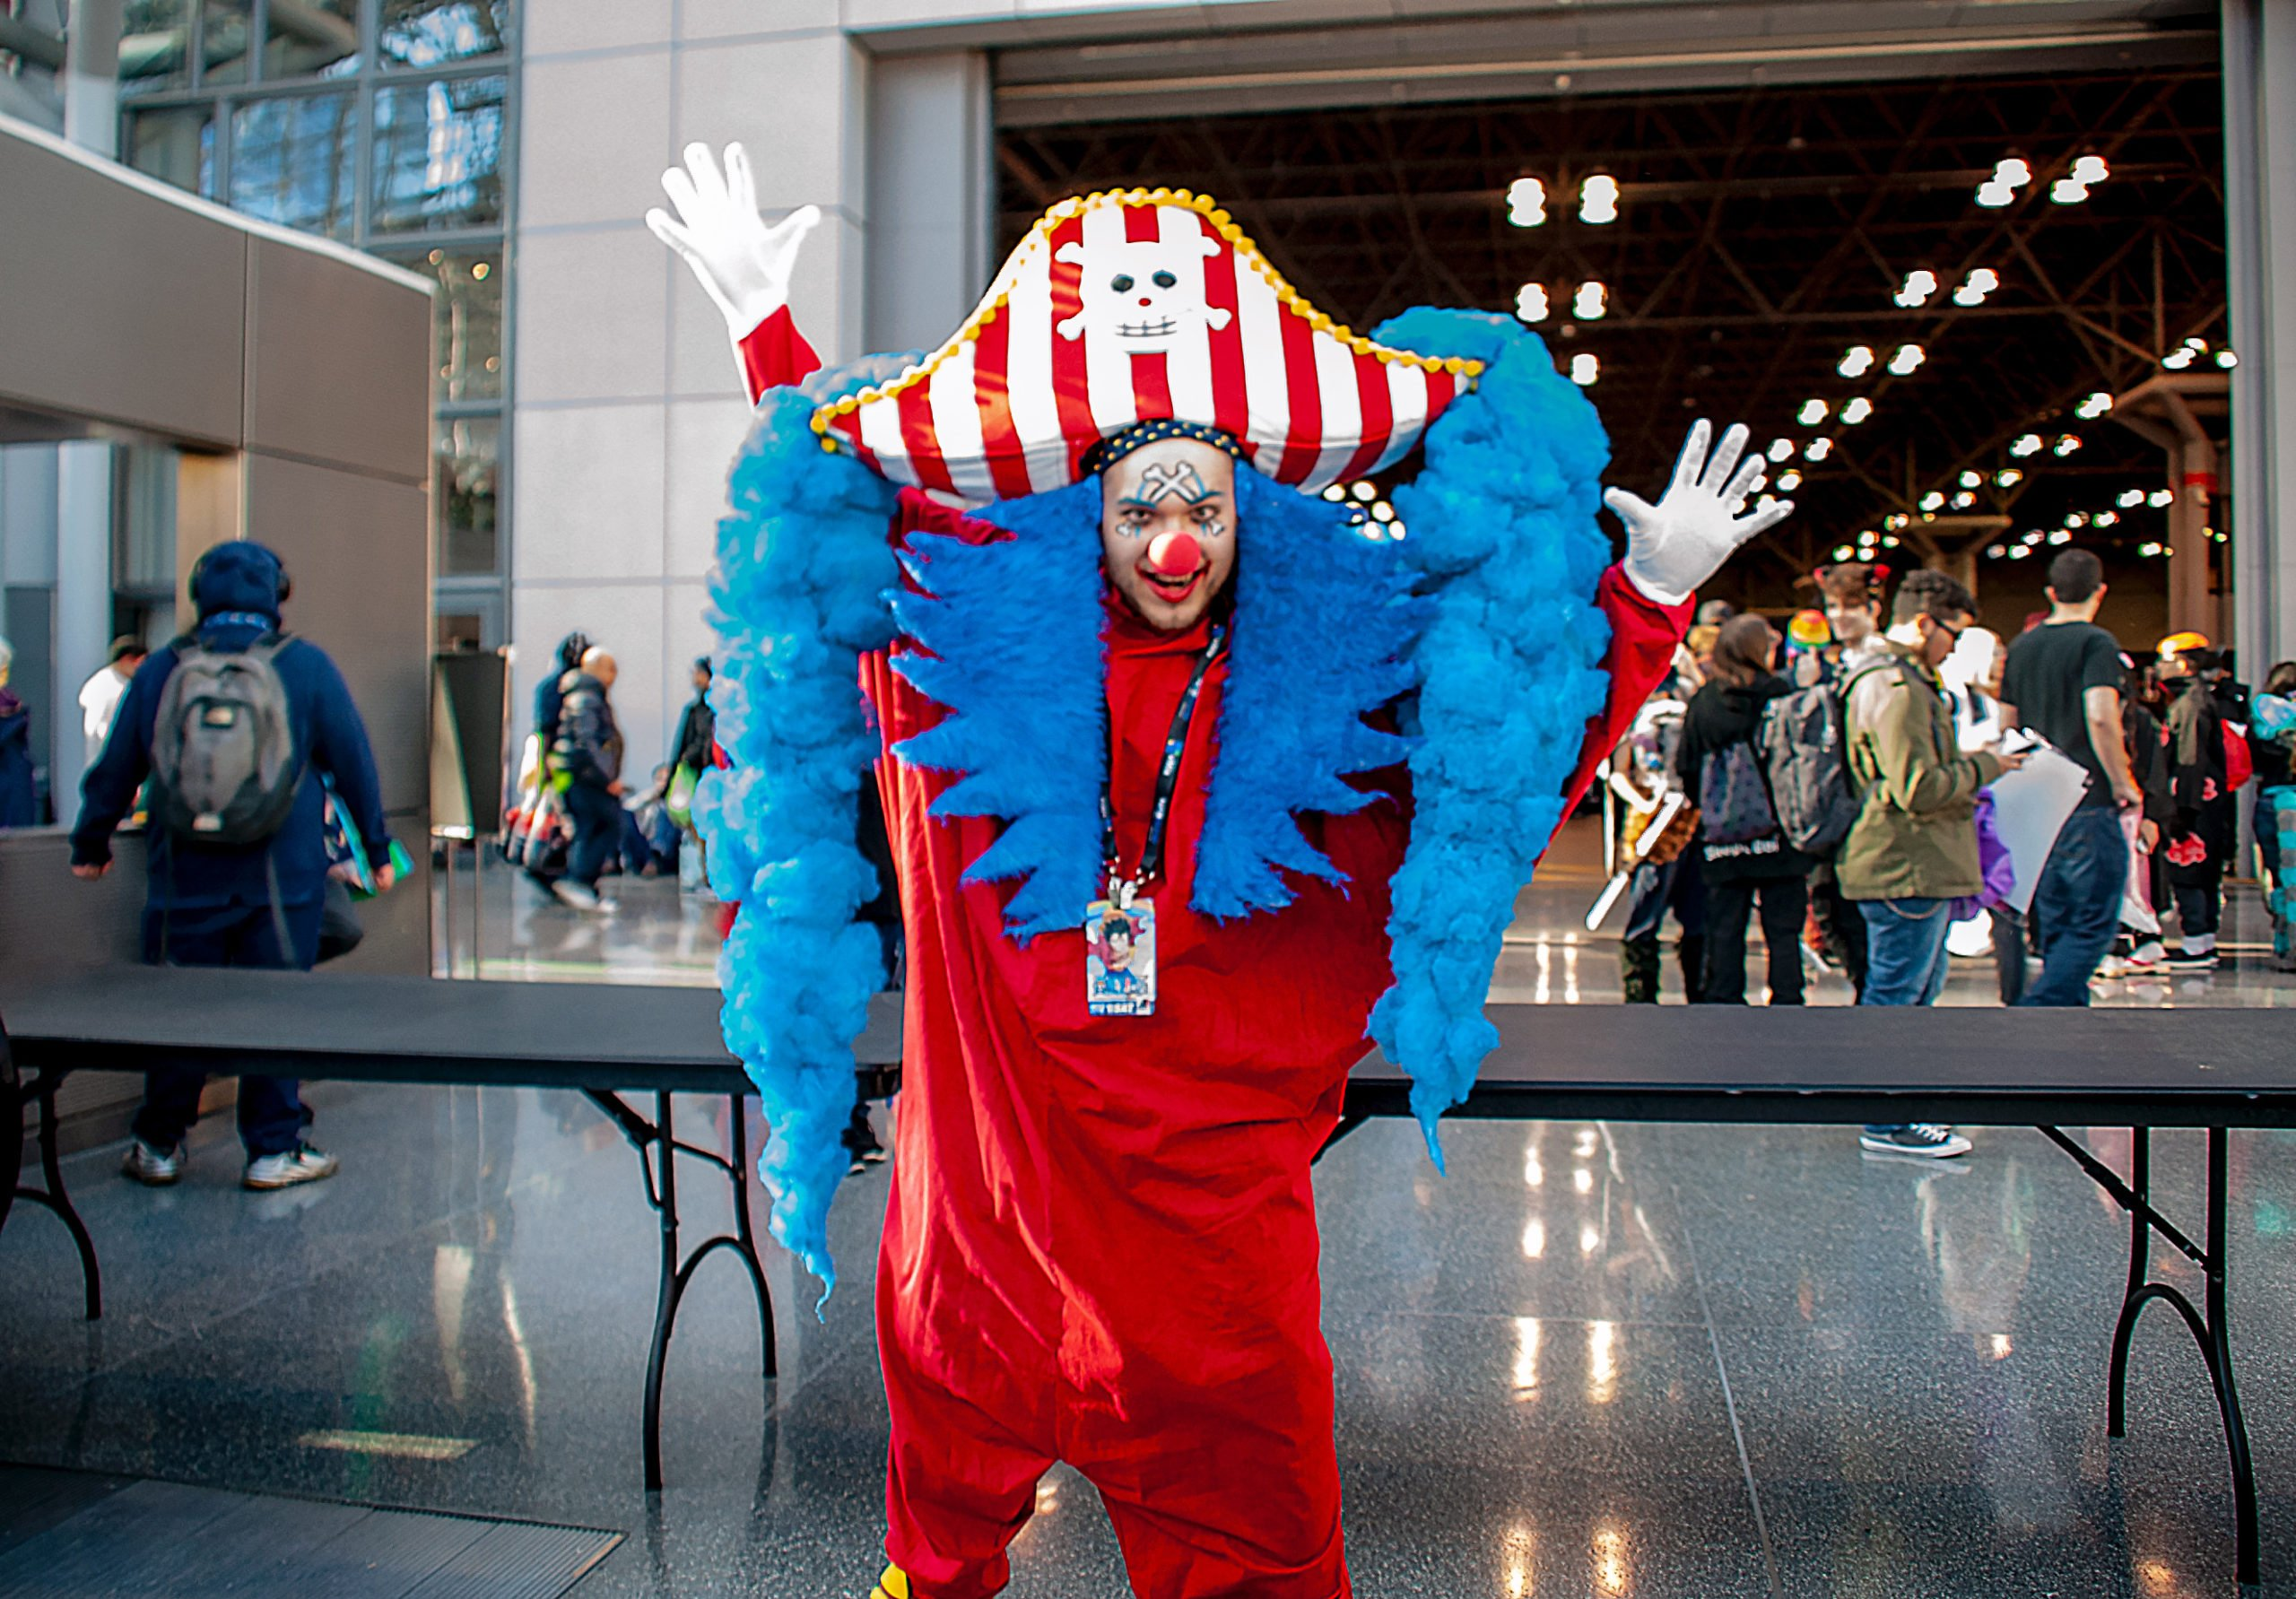 Buggy the Clown Cosplay from One Piece